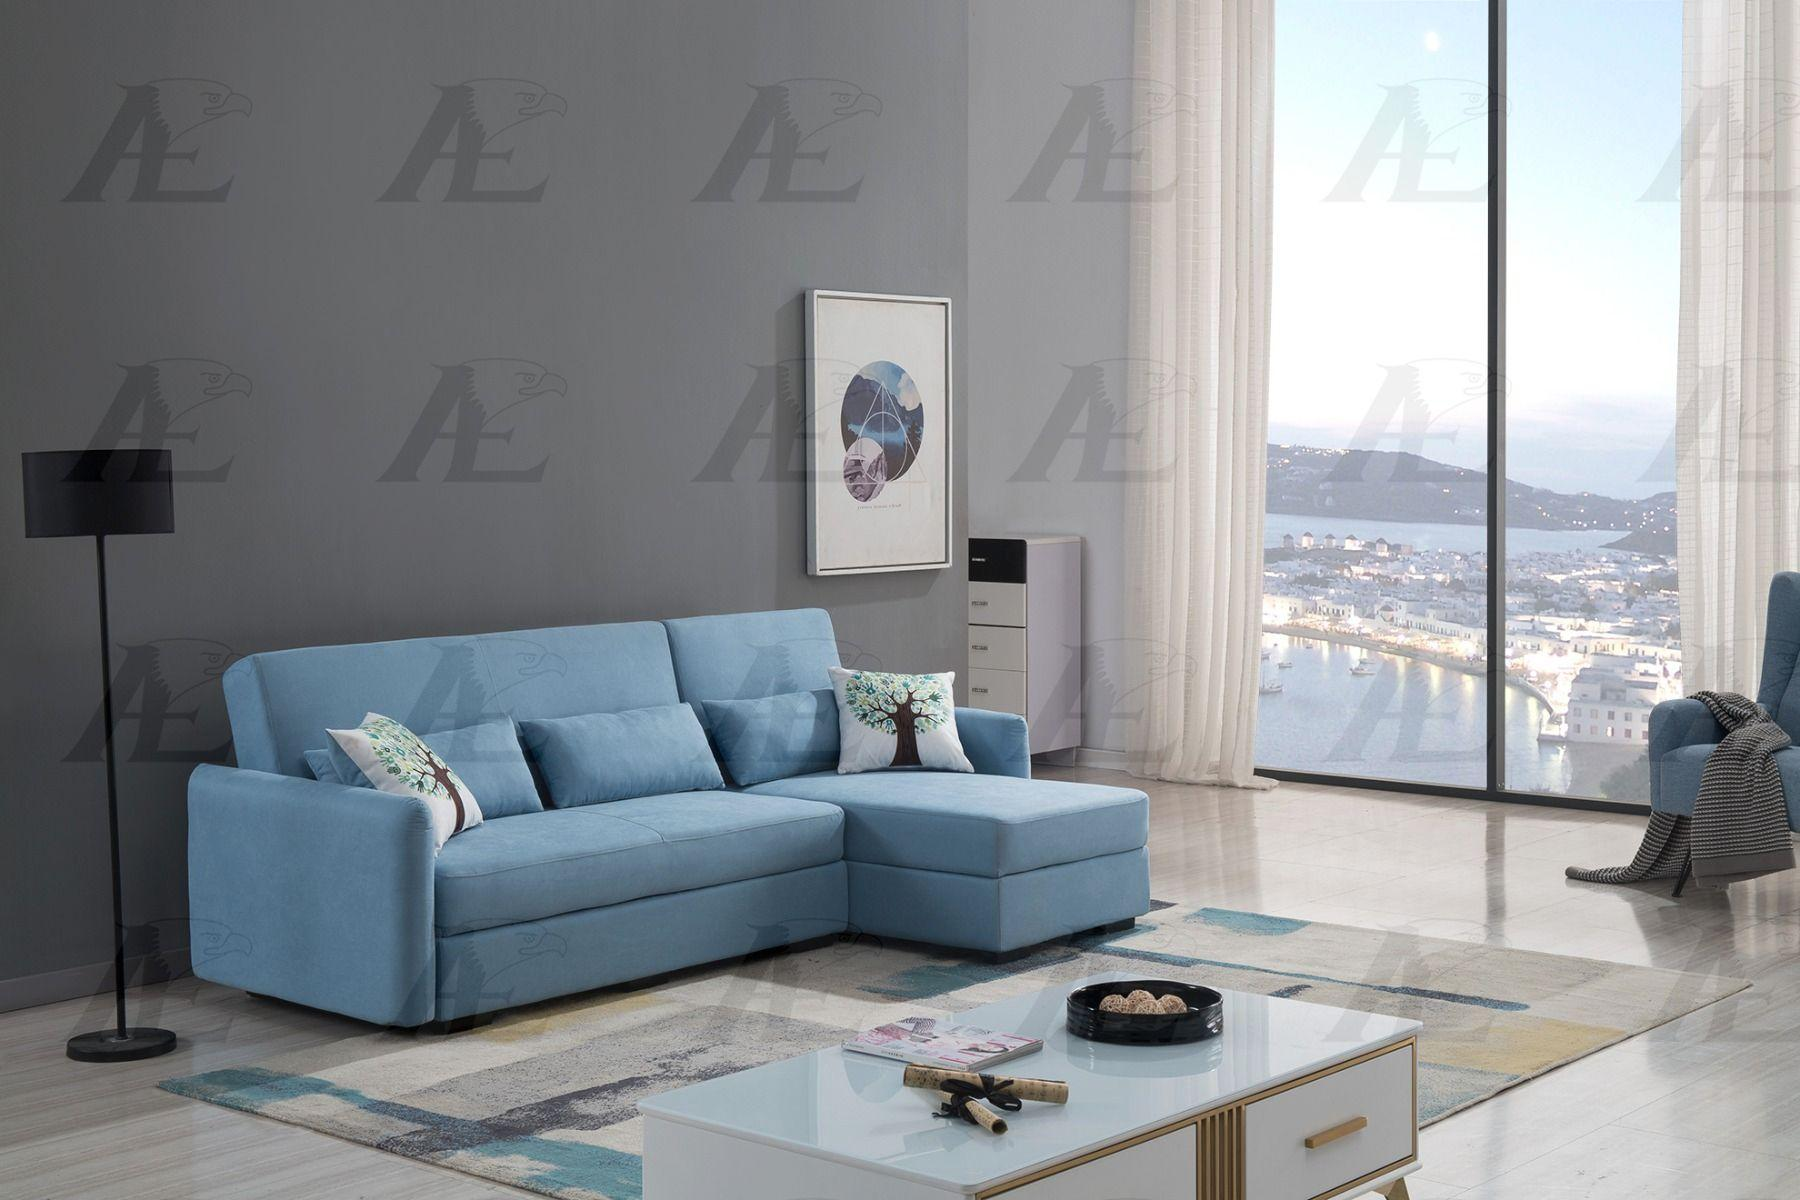 Blue Velvet Sectional Sofa Bed Set W Storage Right Chaise American Eagle Ae Ld828 Ae Ld828 Rhc